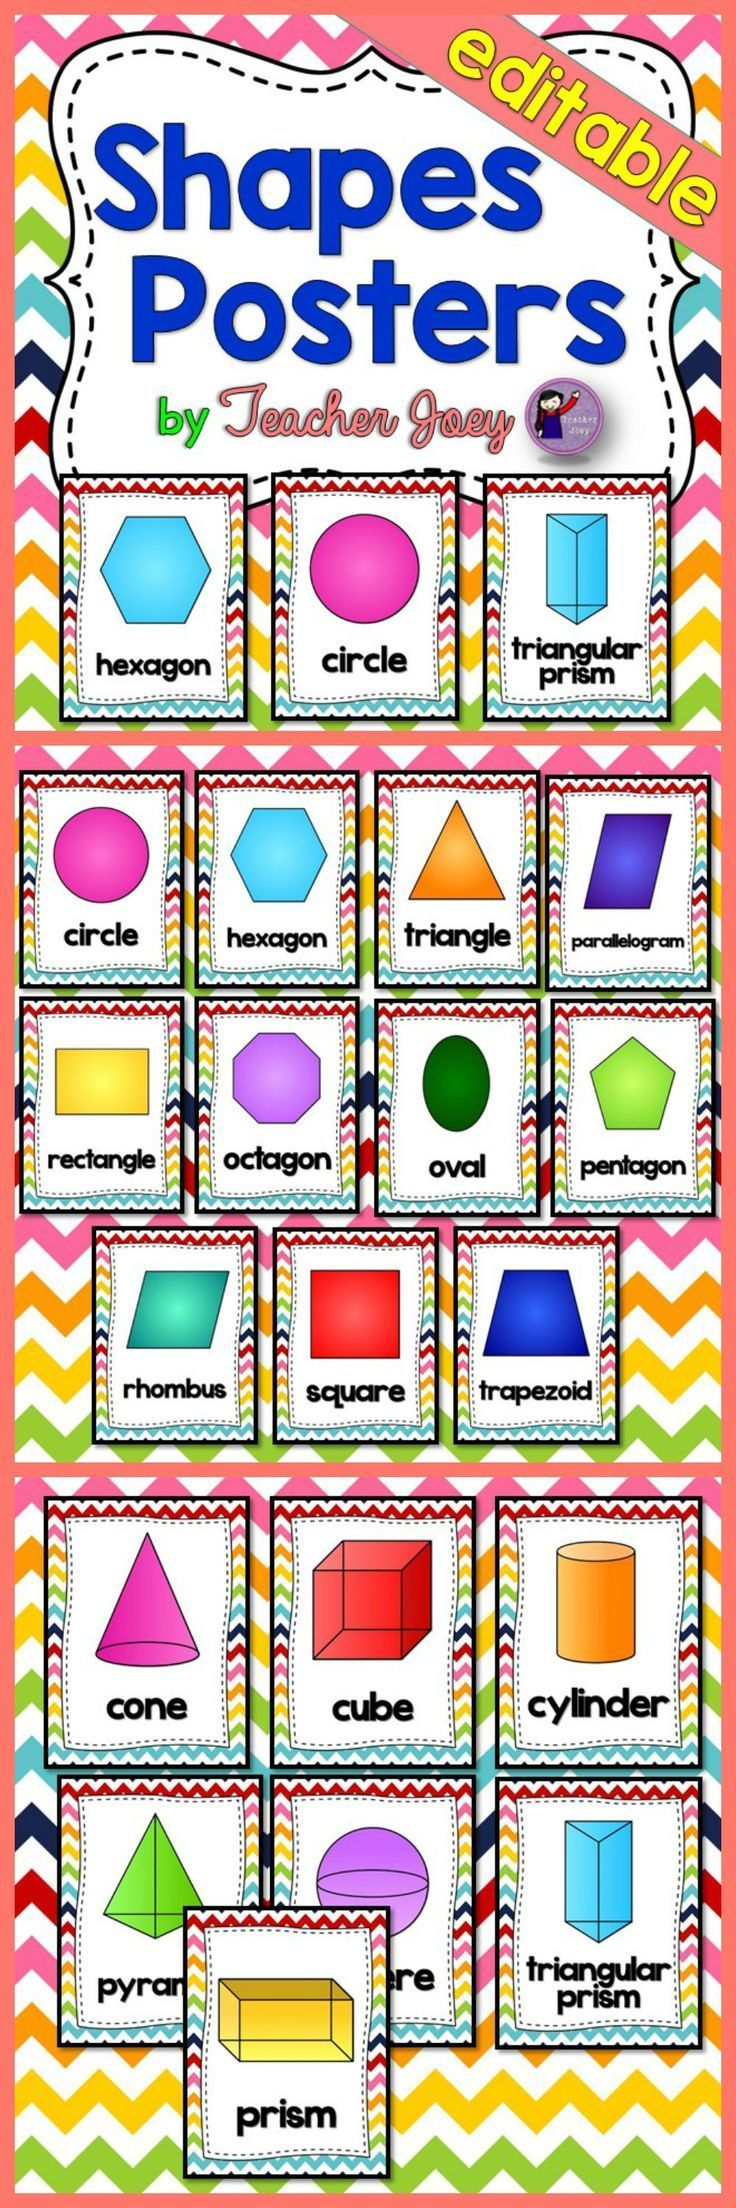 Shapes : Shapes : Shapes Rainbow Chevron Background Shapes Posters Flashcards  This shapes poster set is designed with rainbow diagonal stripes background which includes 2D and 3D shapes.  I included a PowerPoint file of all the shapes in which you may type in your own text. This is perfect if you teach a language other than English.  You may print multiple cards on one sheet to make flashcards.